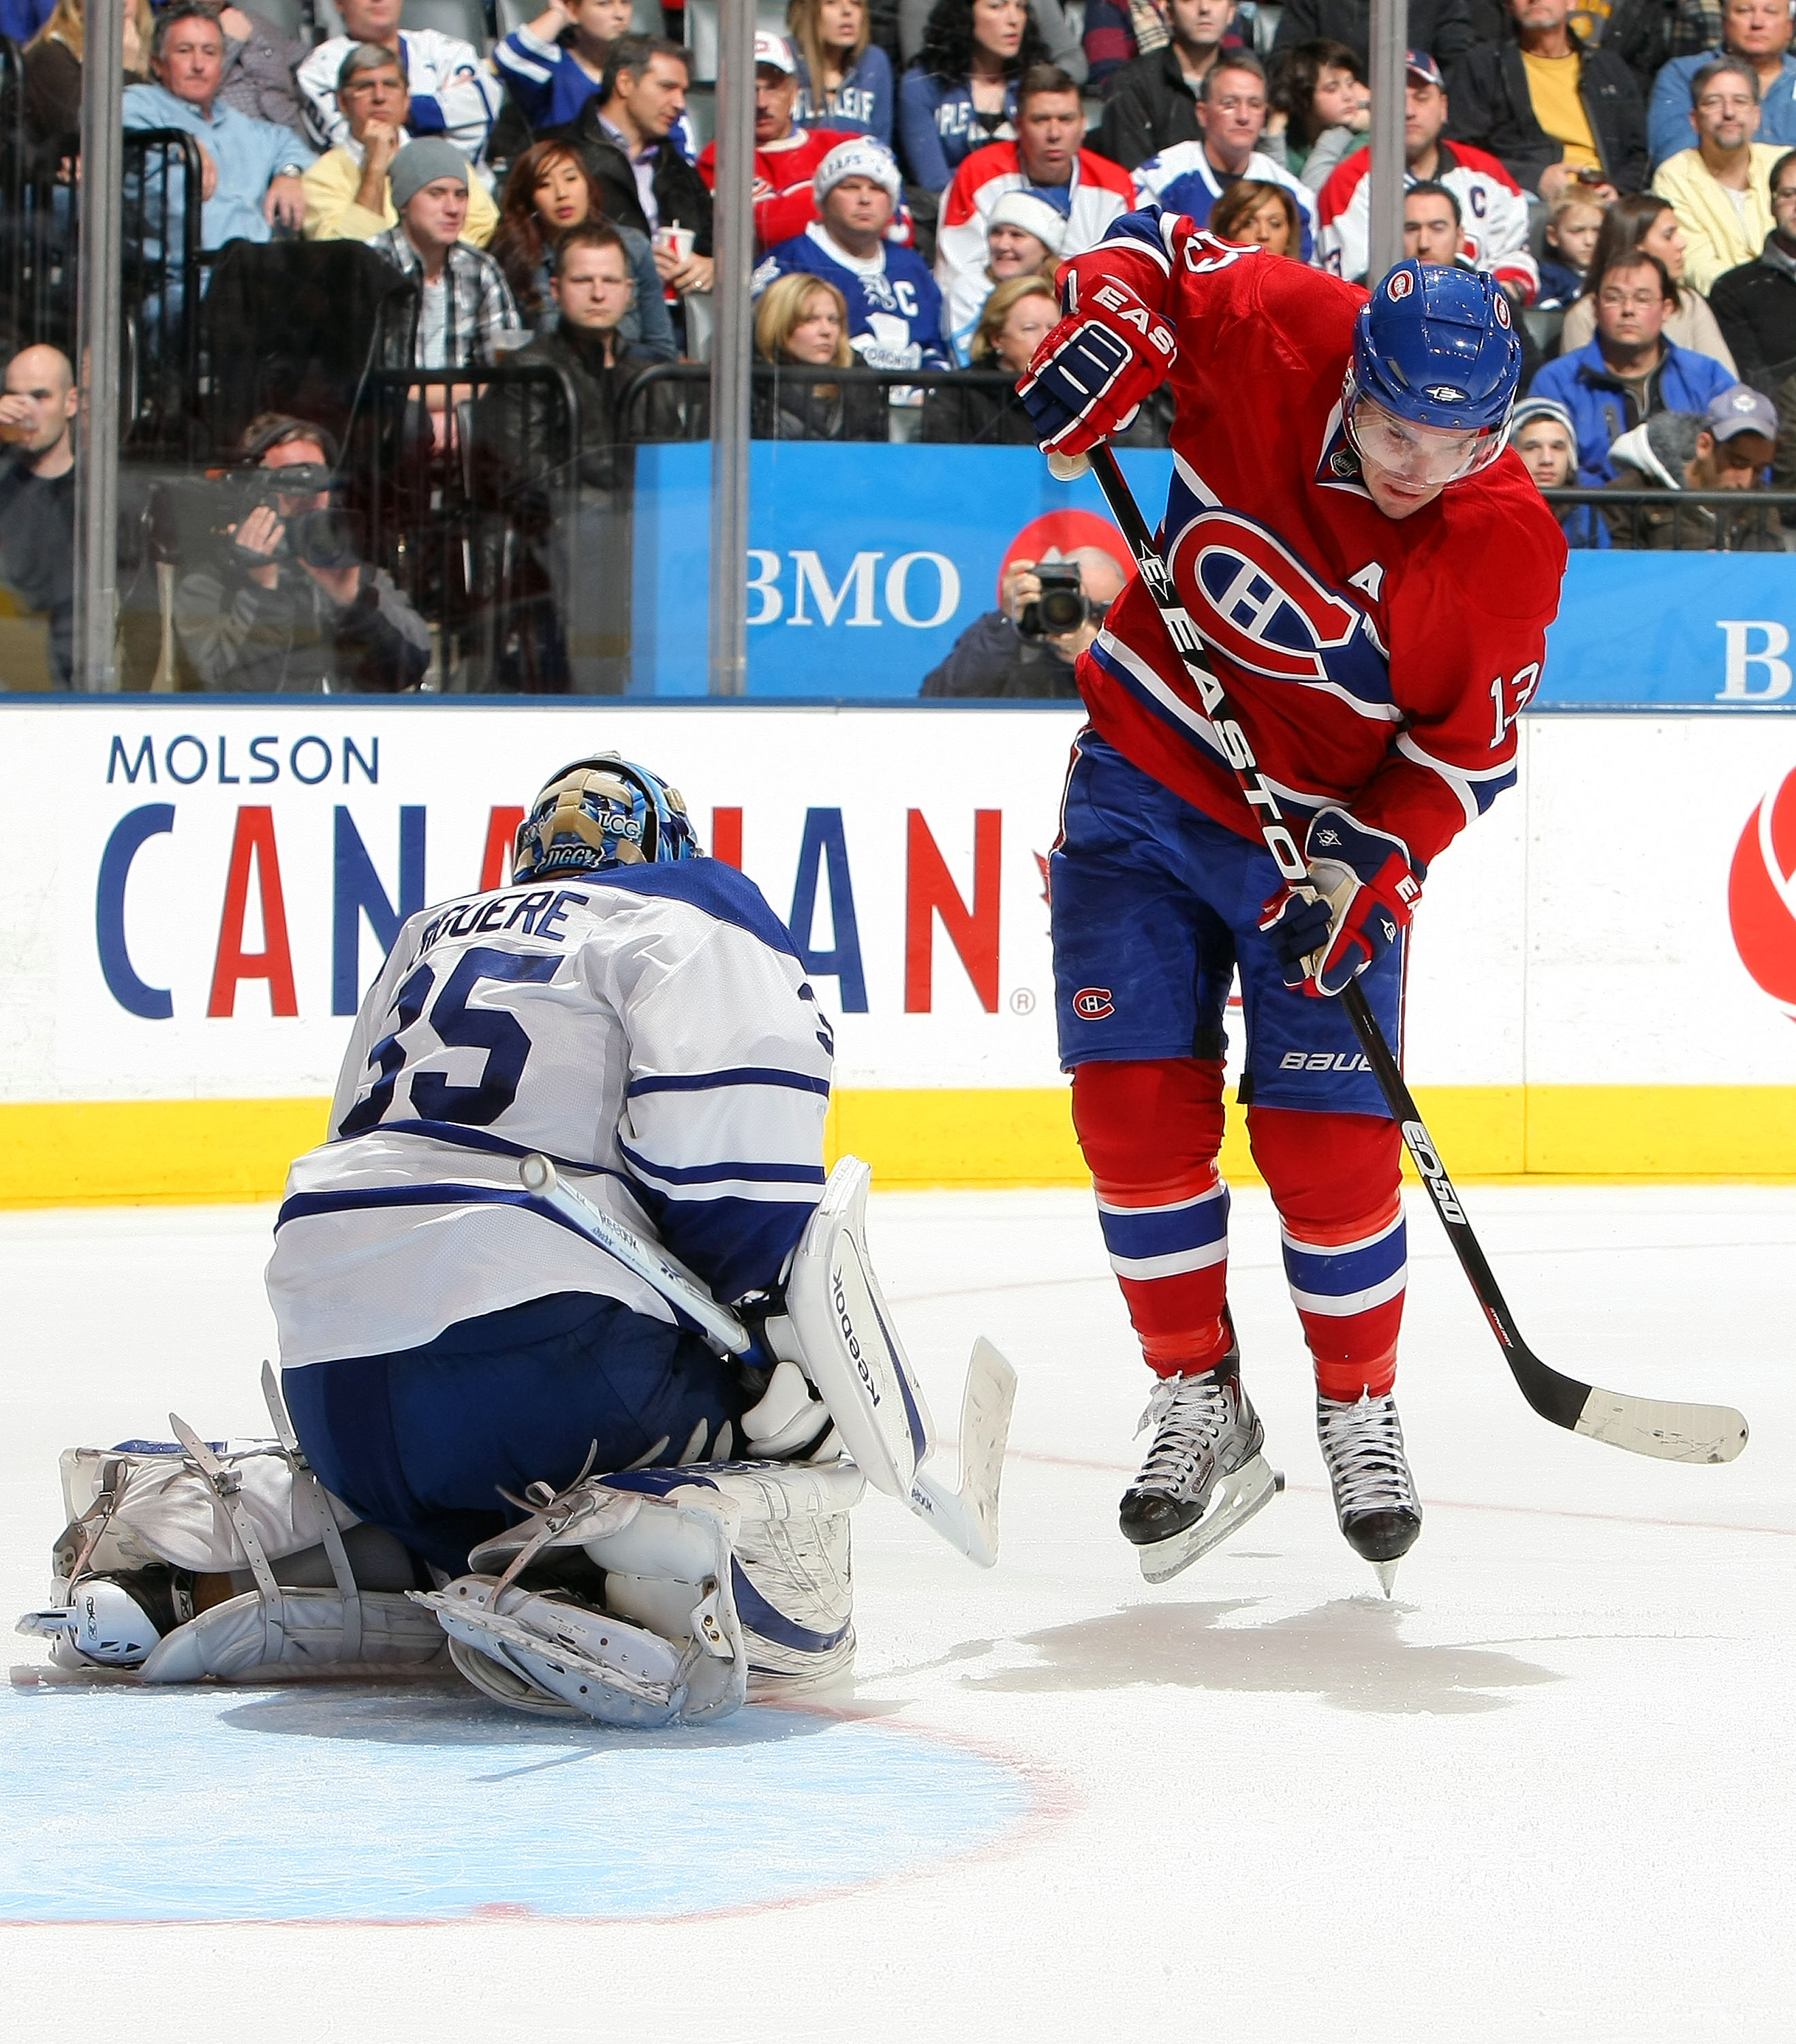 TORONTO - DECEMBER 11:  Mike Cammalleri #13 of the Montreal Canadiens leaps to avoid a shot as Jean-Sebastien Giguere #35 of the Toronto Maple Leafs makes a save during their NHL game at Air Canada Centre on December 11, 2010 in Toronto, Ontario, Canada.(